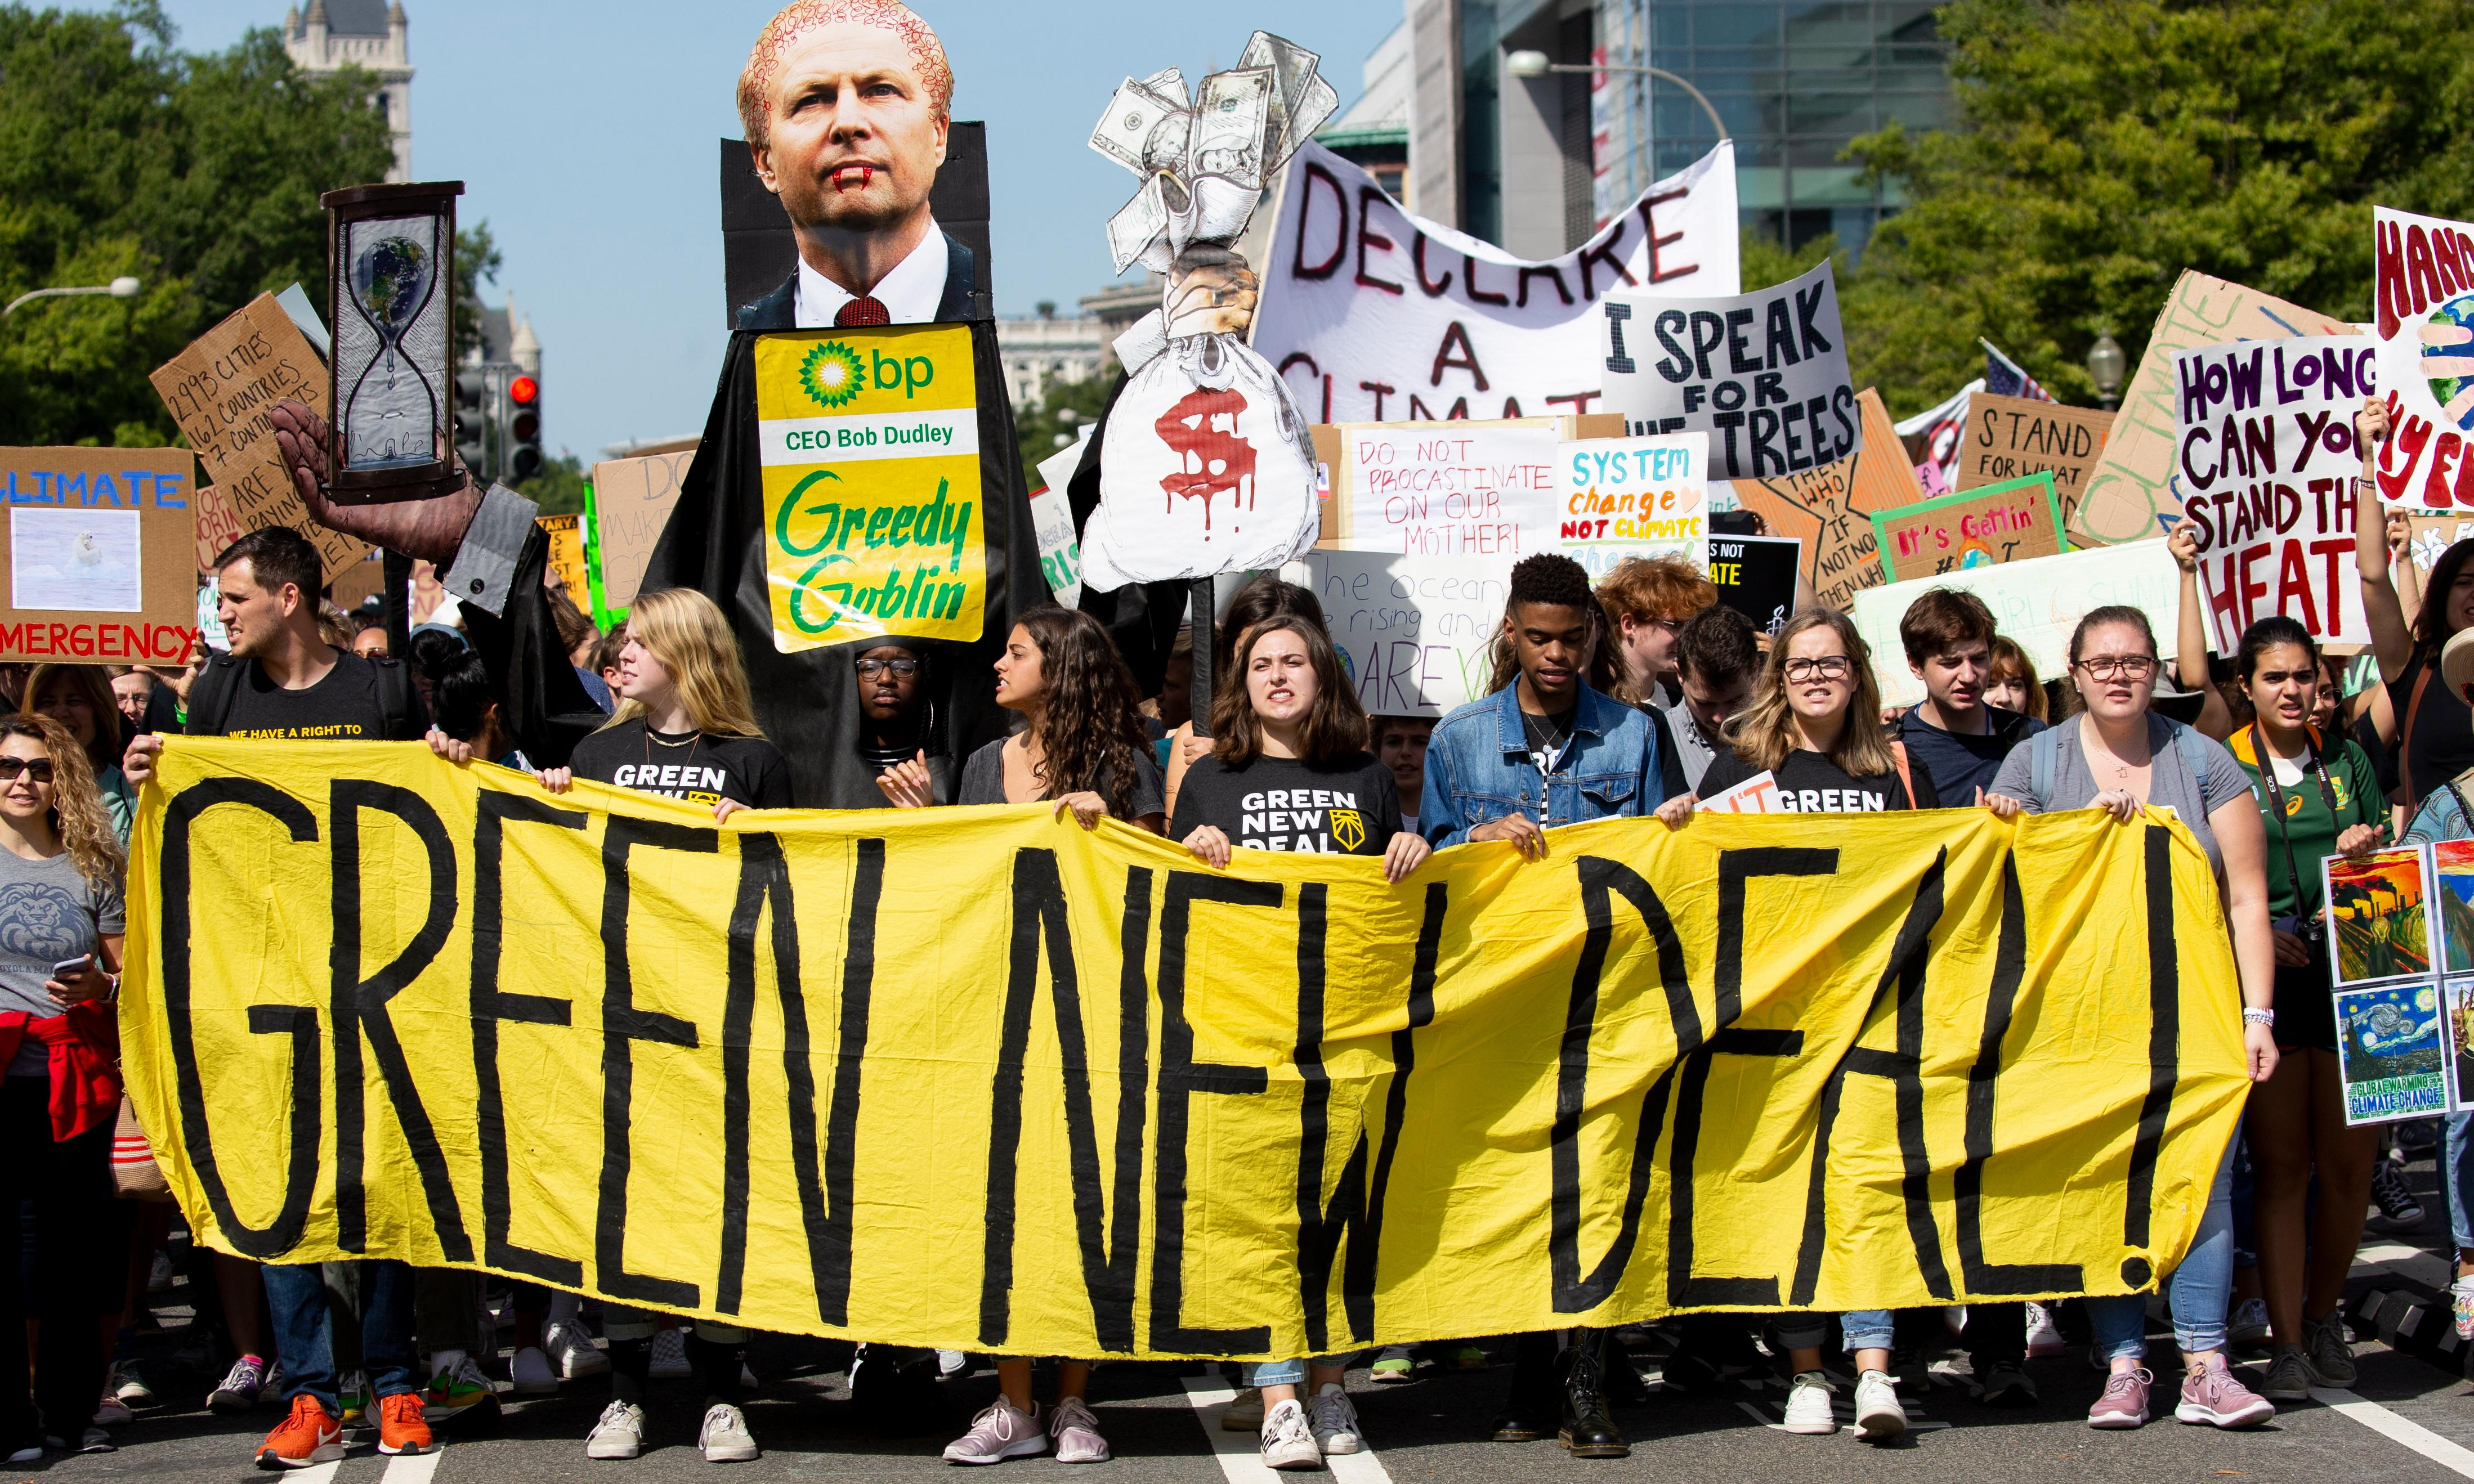 A working-class green movement is out there but not getting the credit it deserves